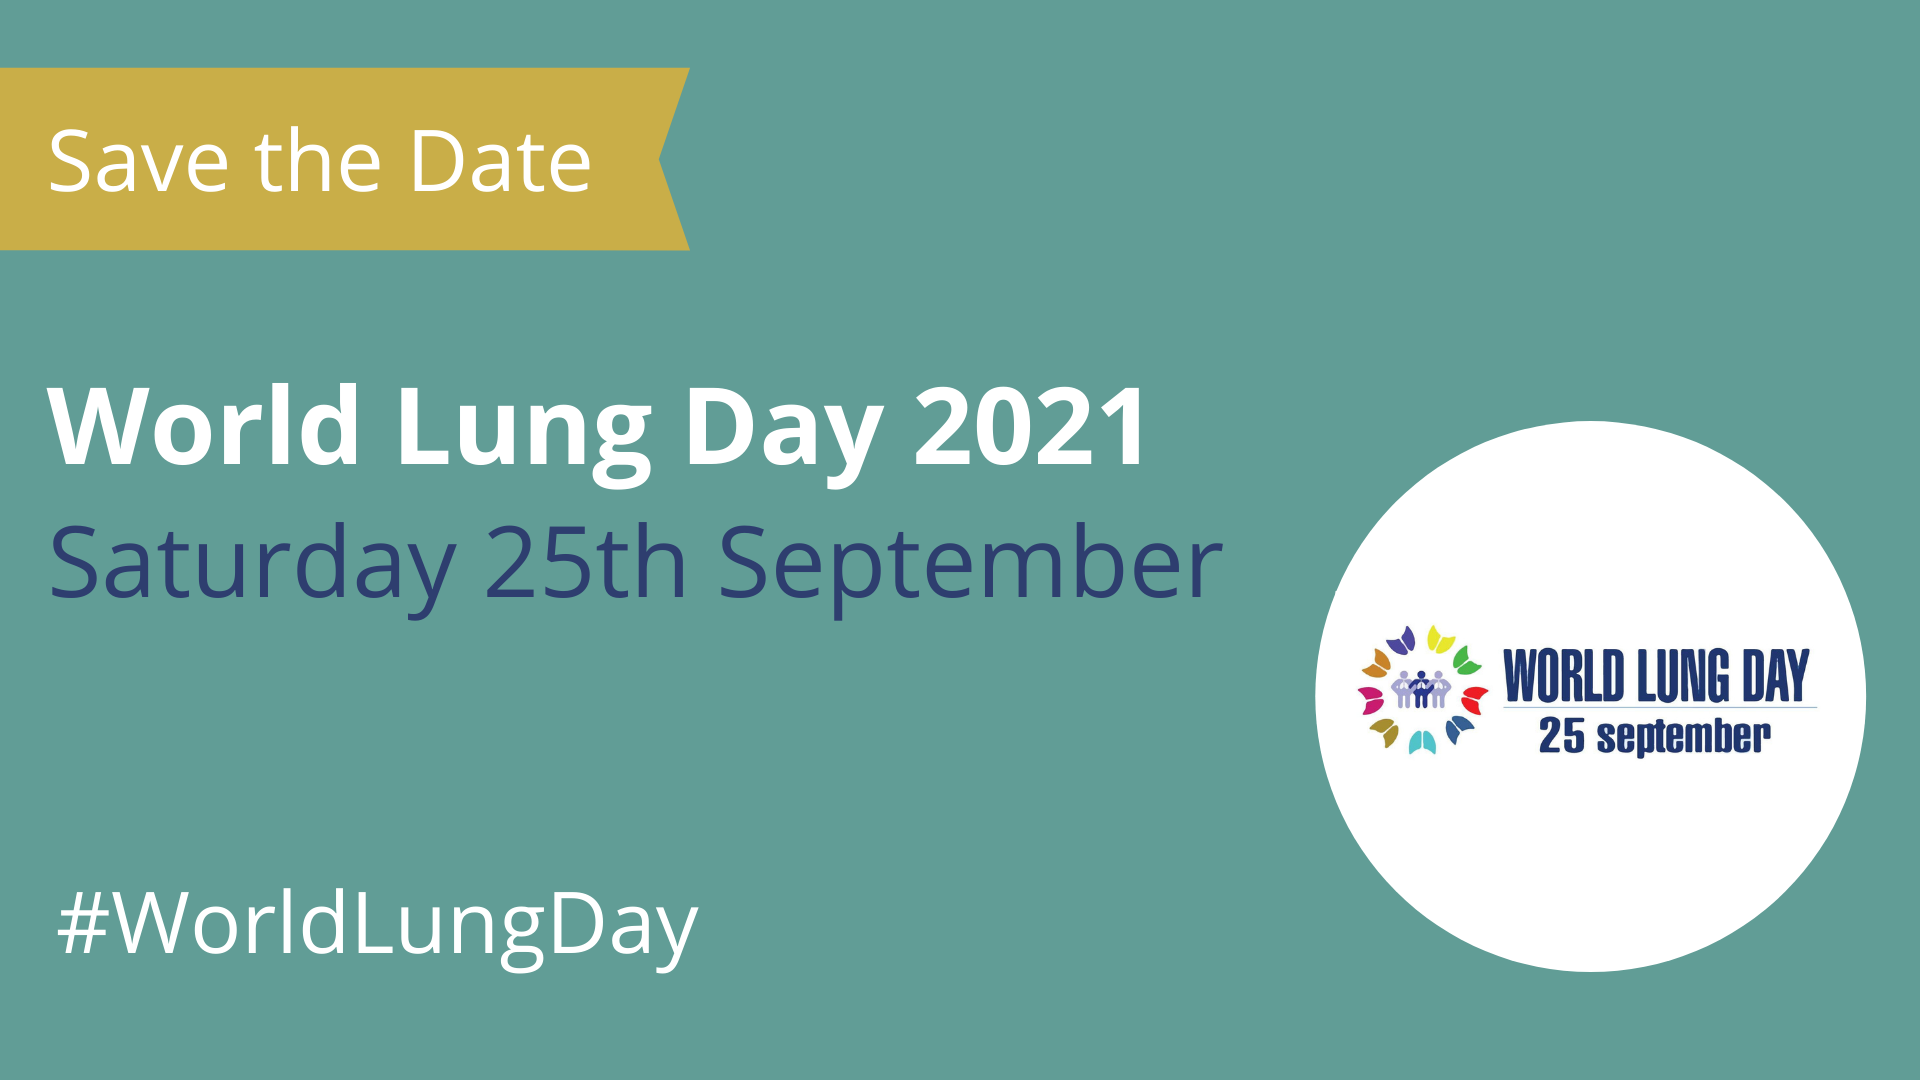 World Lung Day 2021: Care for Your Lungs